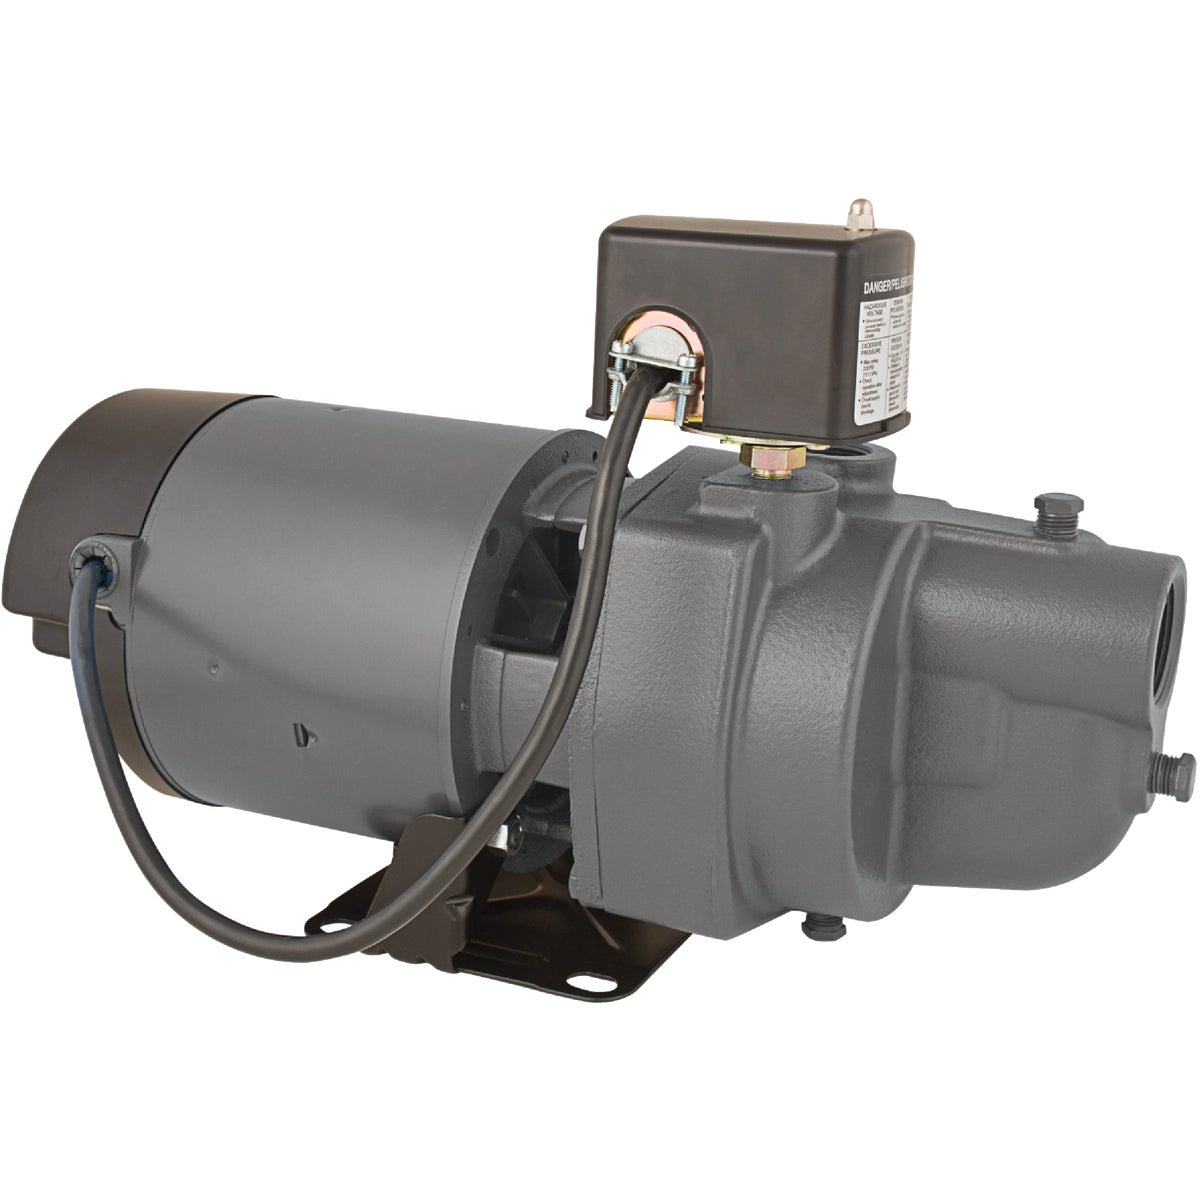 1/2HP SHLW WELL JET PUMP - ES05S by Star Water Systems